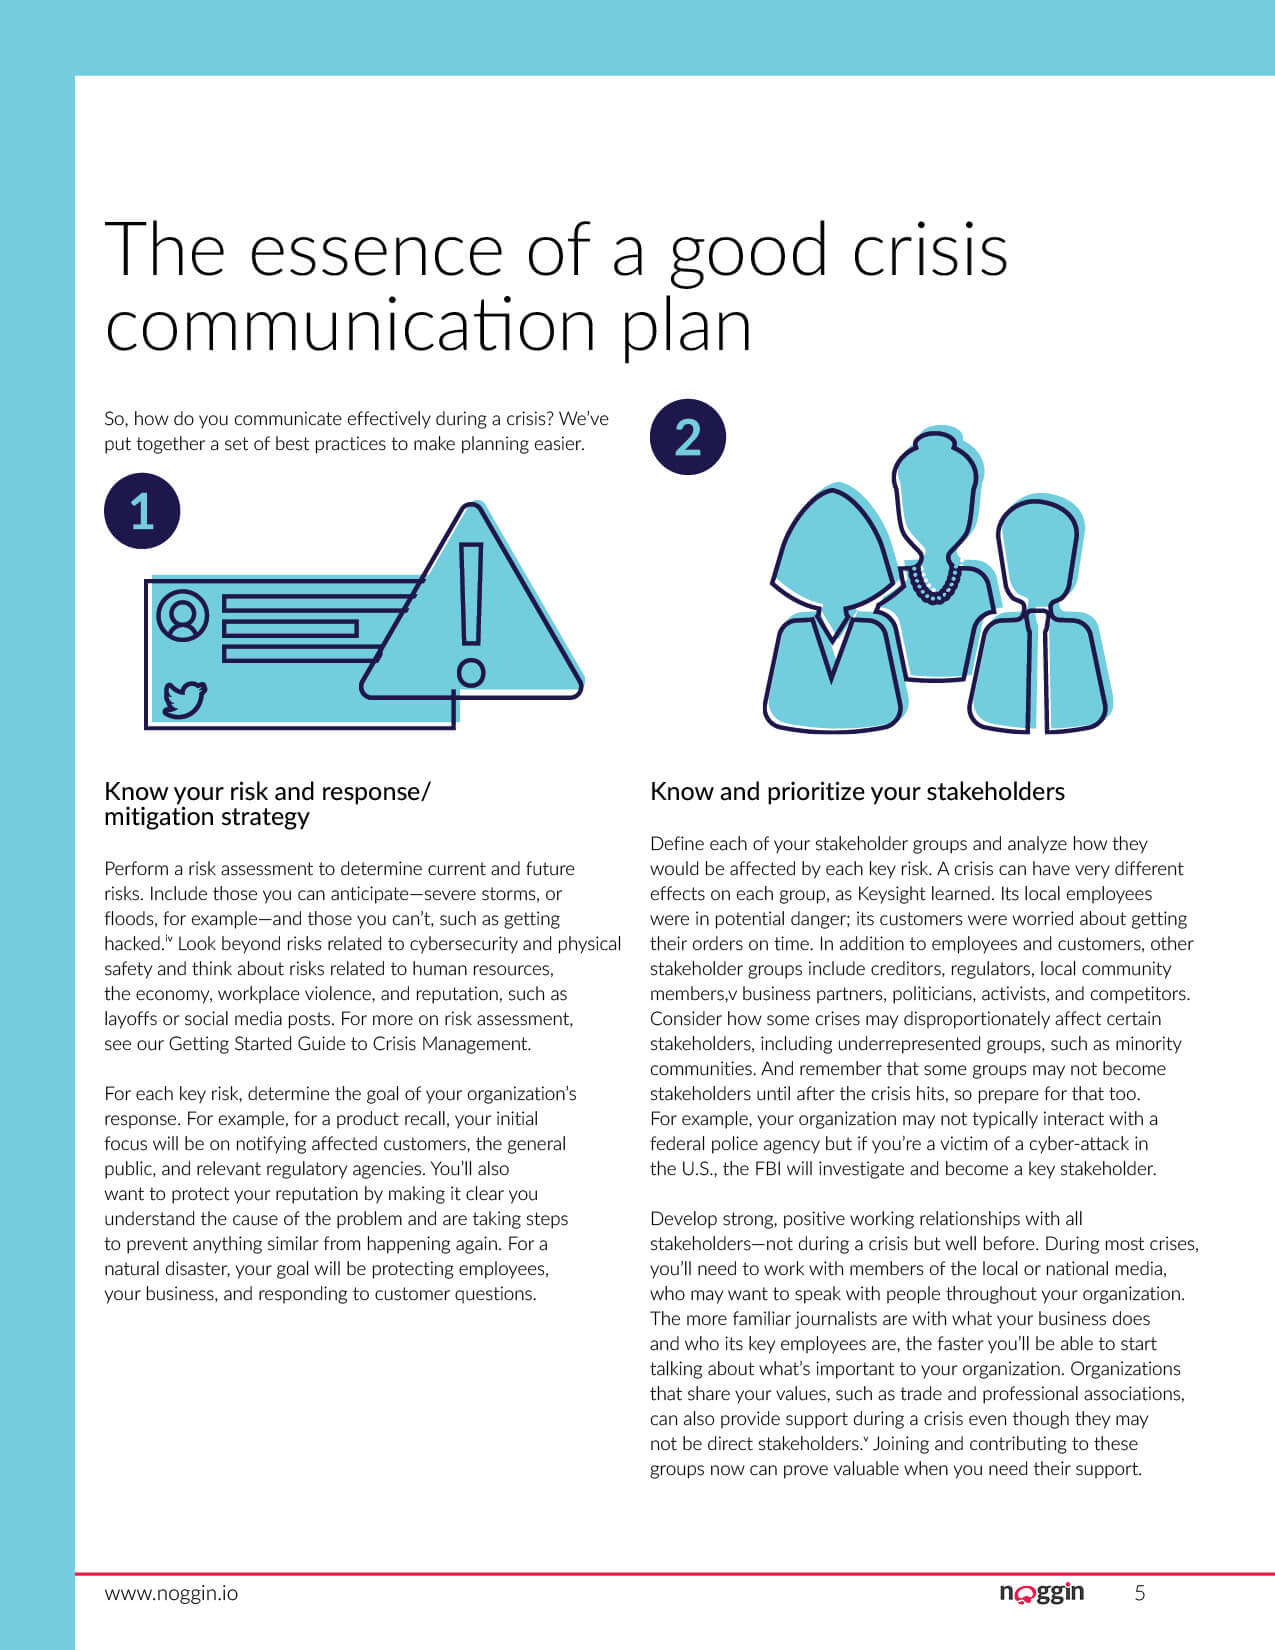 Noggin white paper guide on Effective Crisis Communication. This was created to drive marketing qualified leads for the Noggin Crisis product from the website. Page 5 of 9